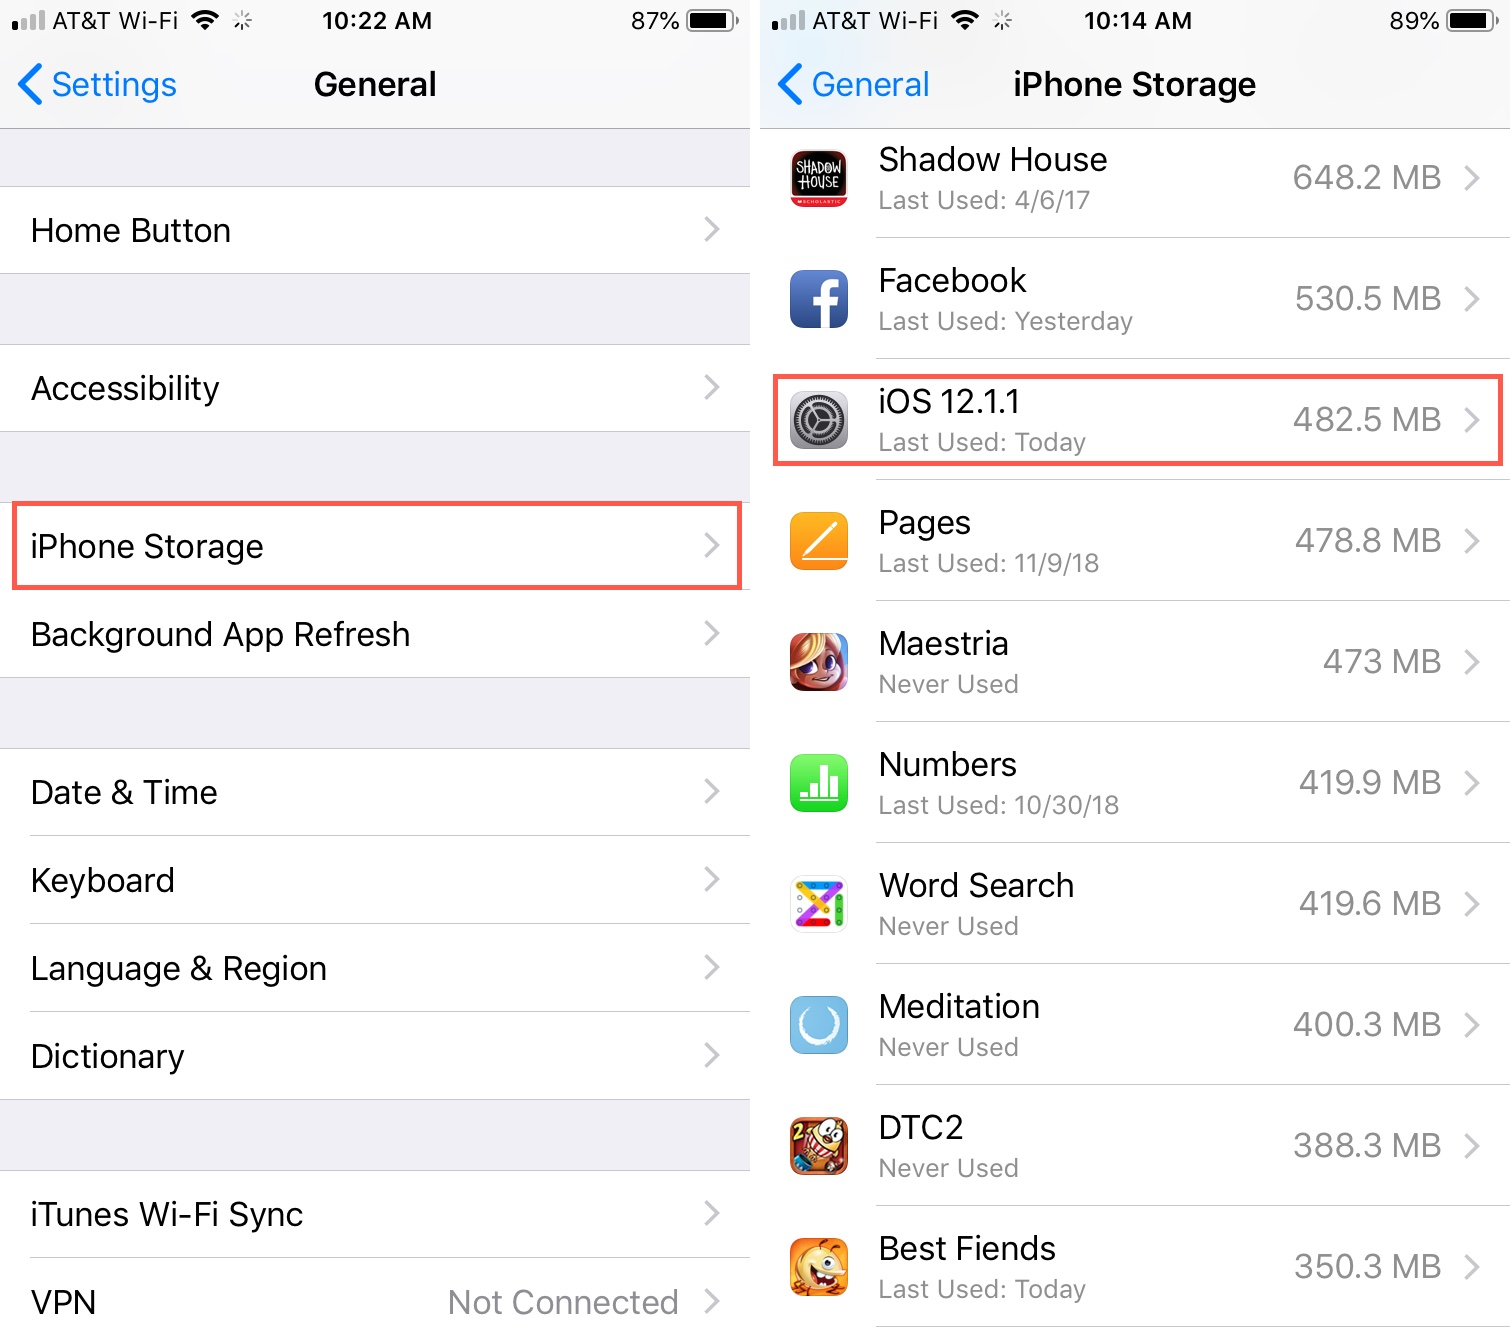 iPhone Storage Recent iOS File